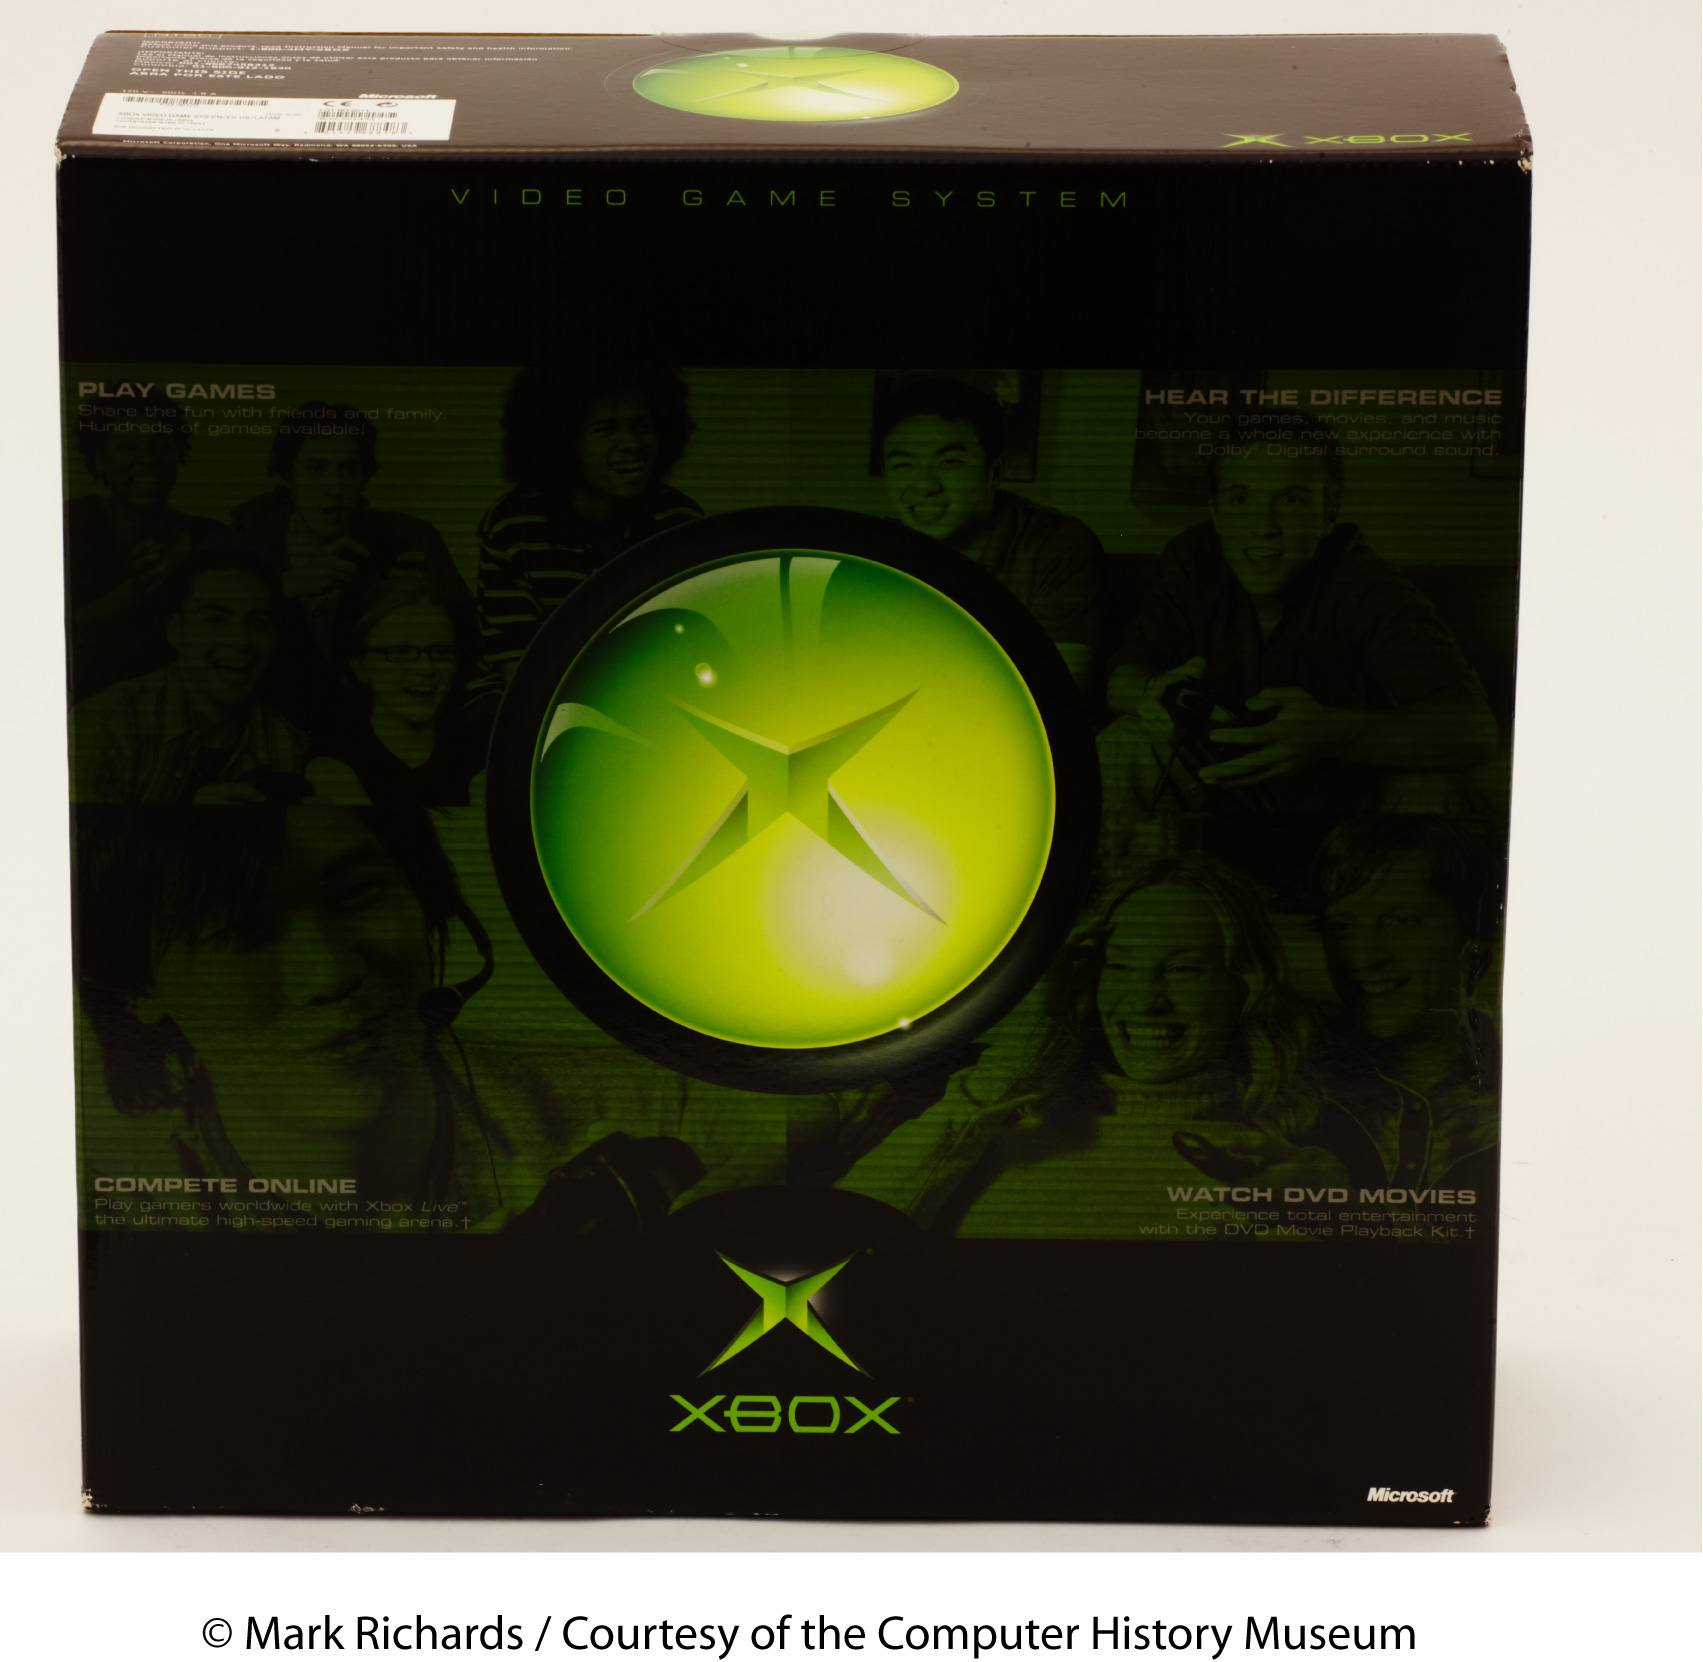 XBox console packaging.